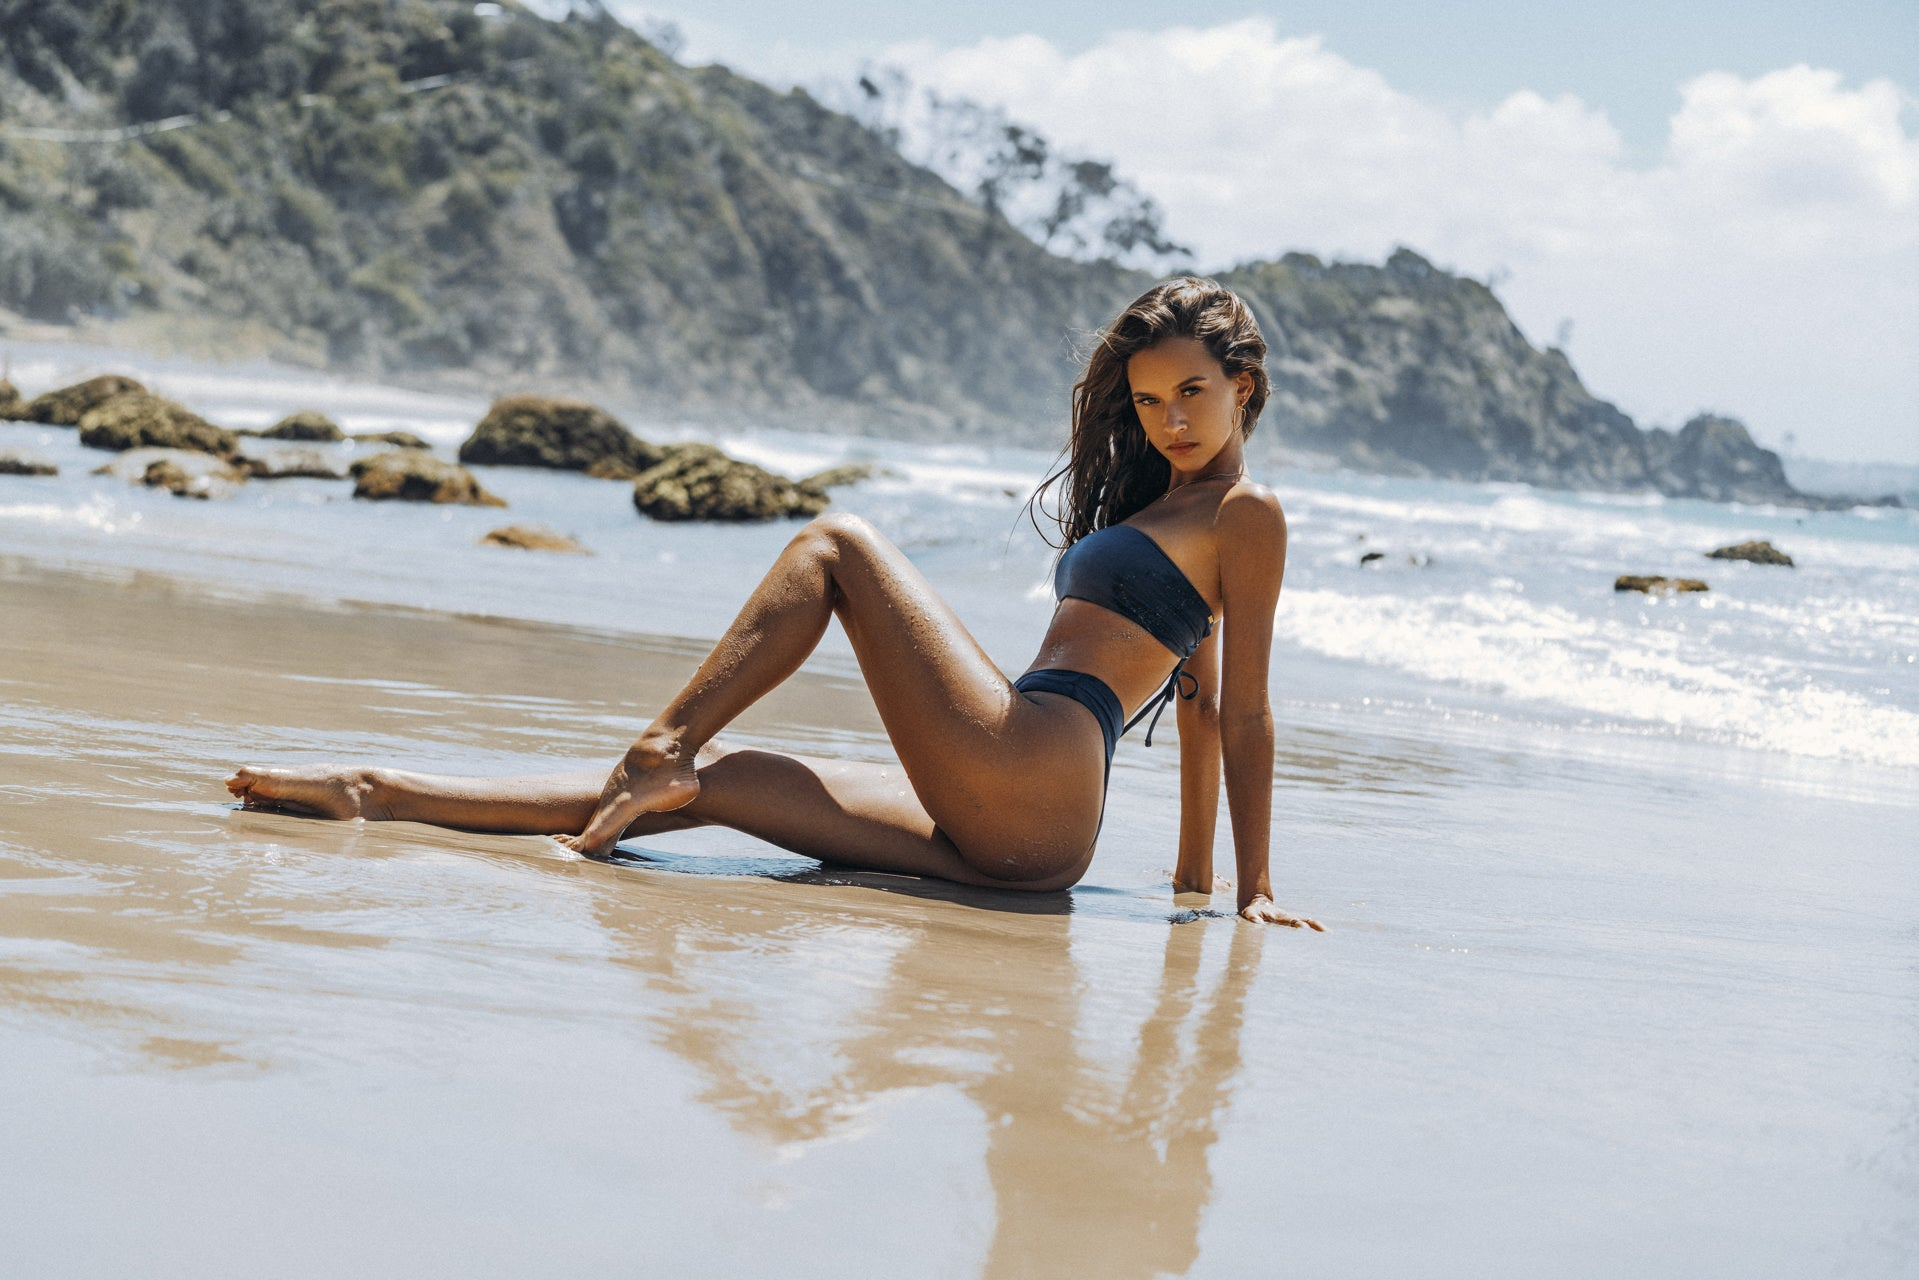 Isabelle Mathers wearing the For You Bikini Bandeau Set Deep Blue on the beach